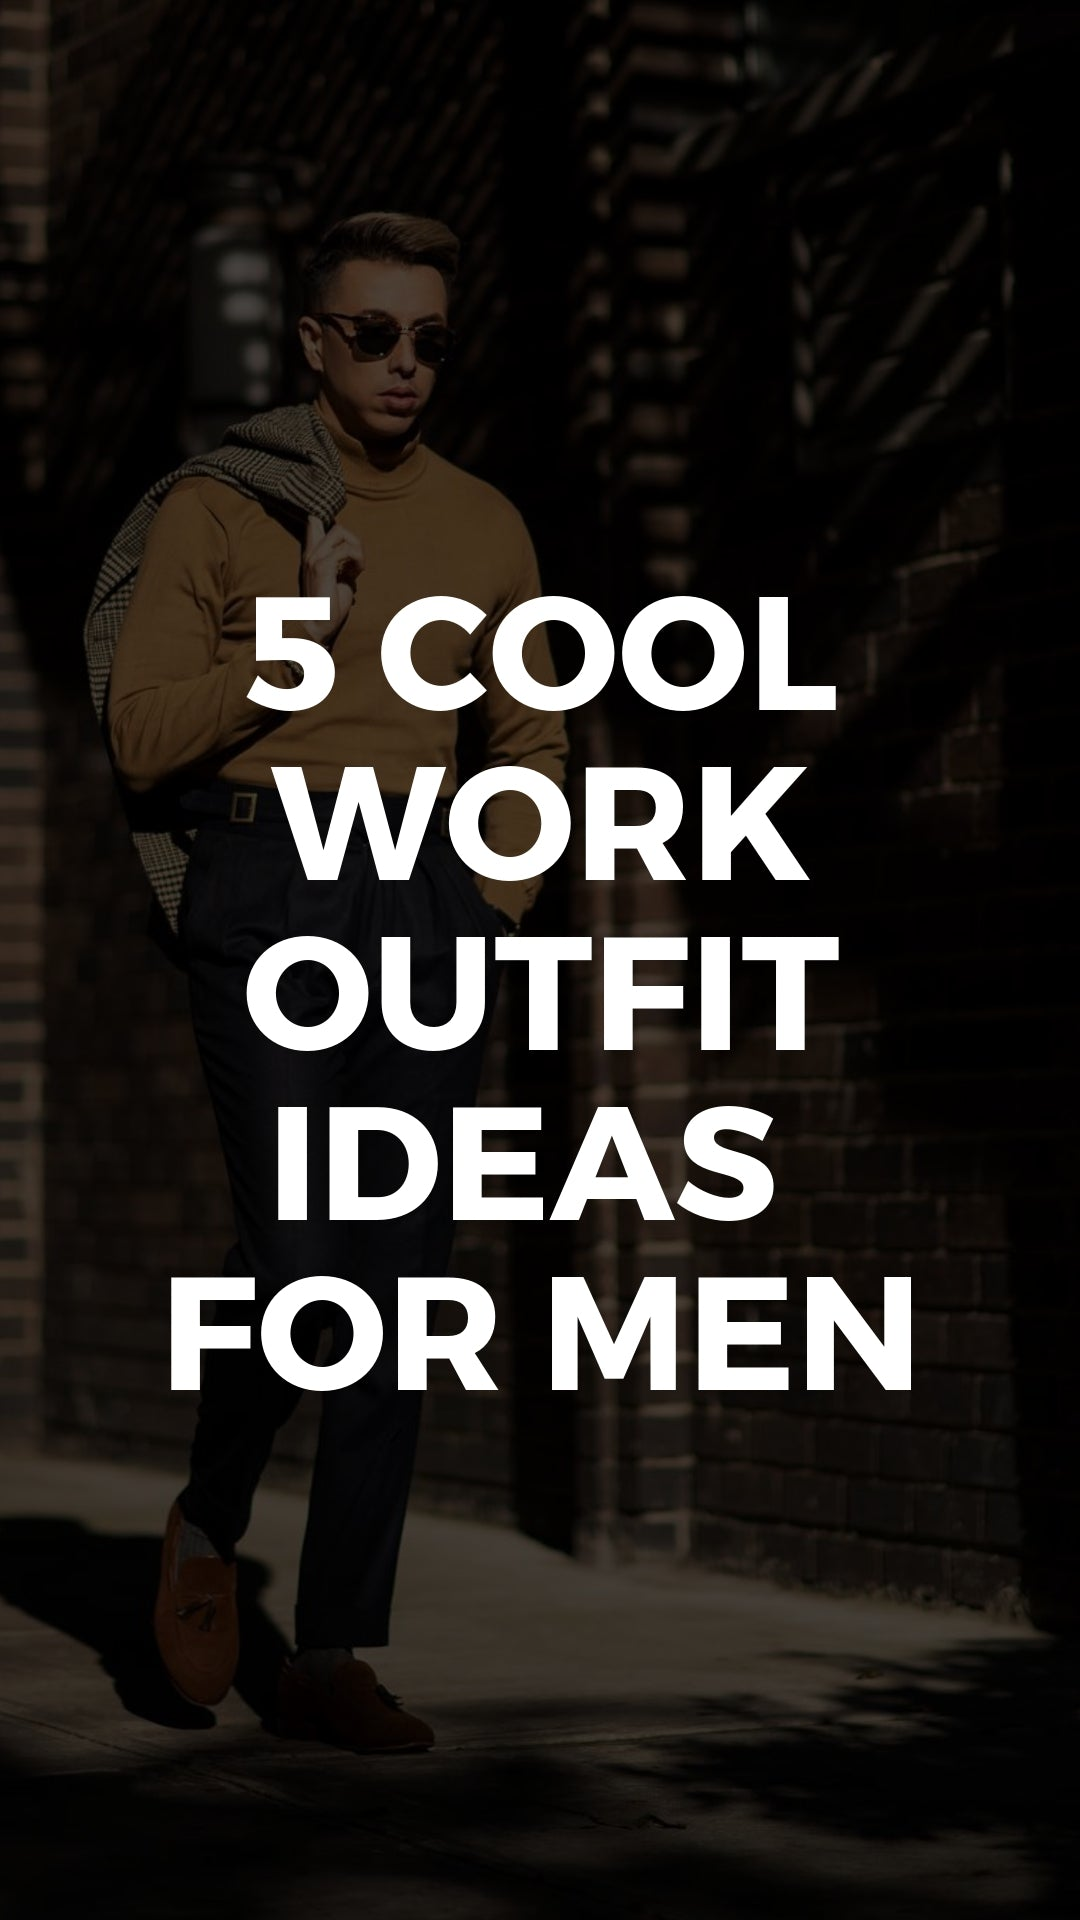 This Is Where I Go For Truly Edgy Work Outfit Ideas #workwear #businesscasual #outfits #mensfashion #streetstyle